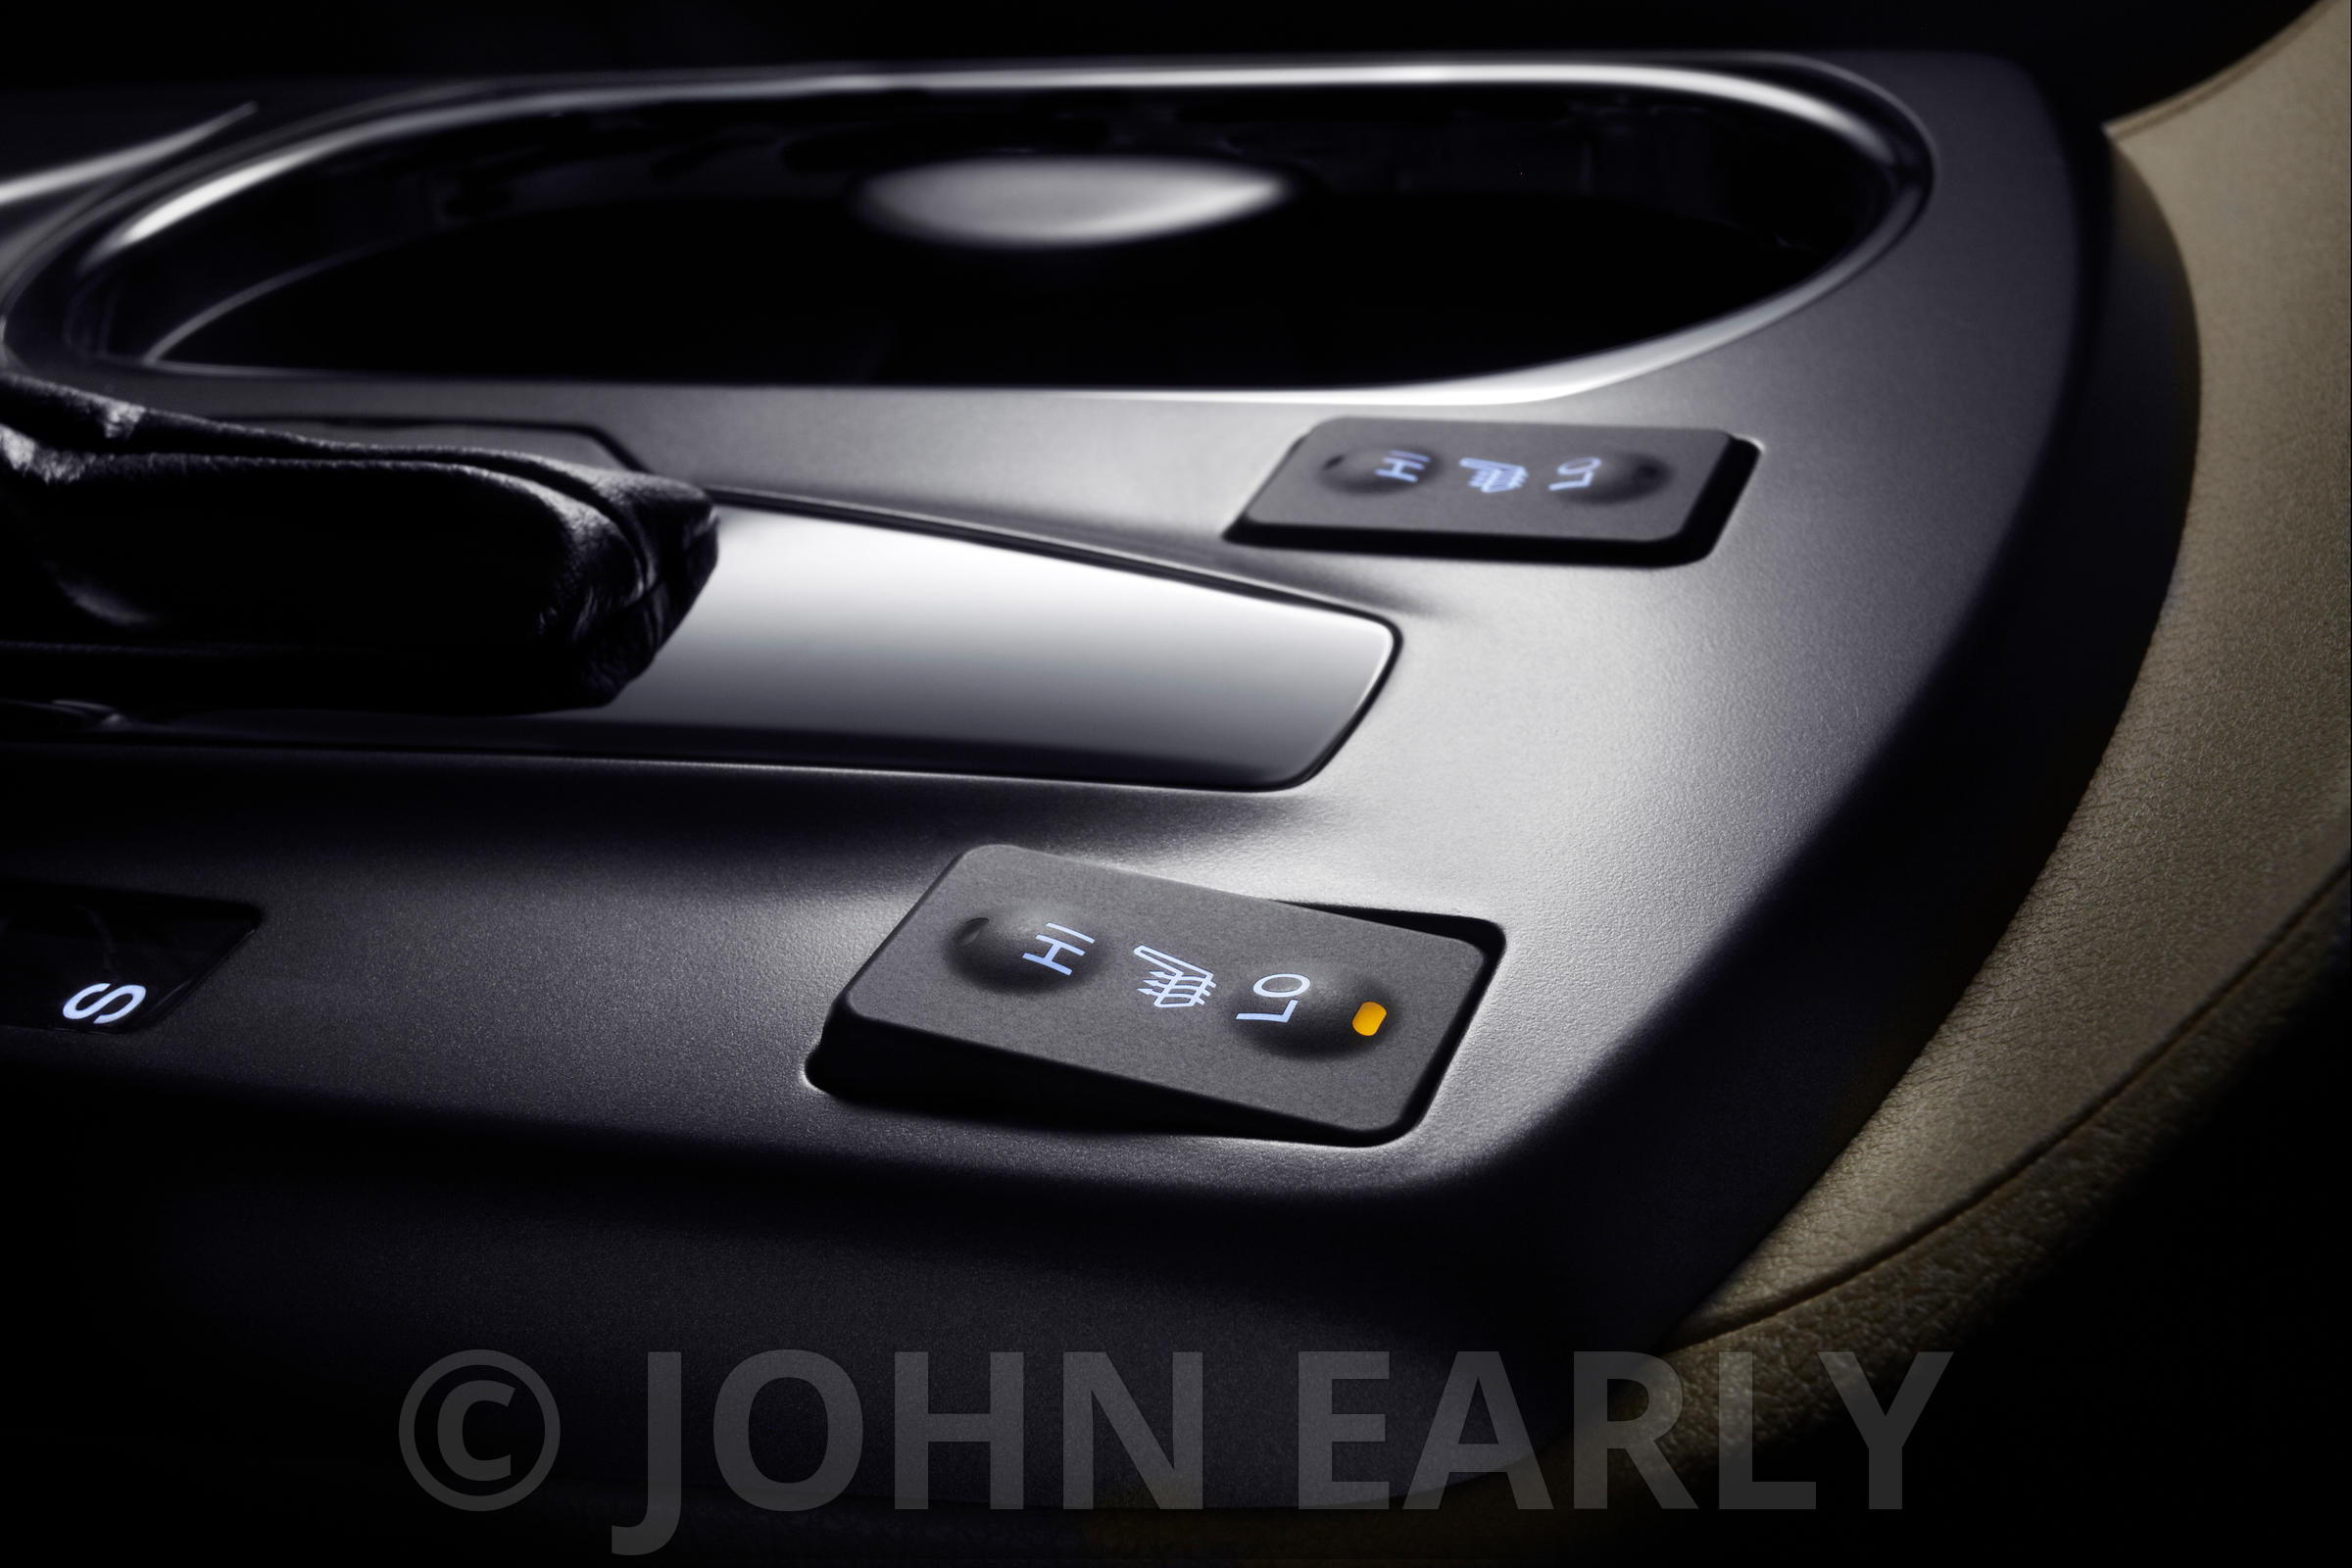 Moody Close-up of Seat Heater Buttons in Vehicle